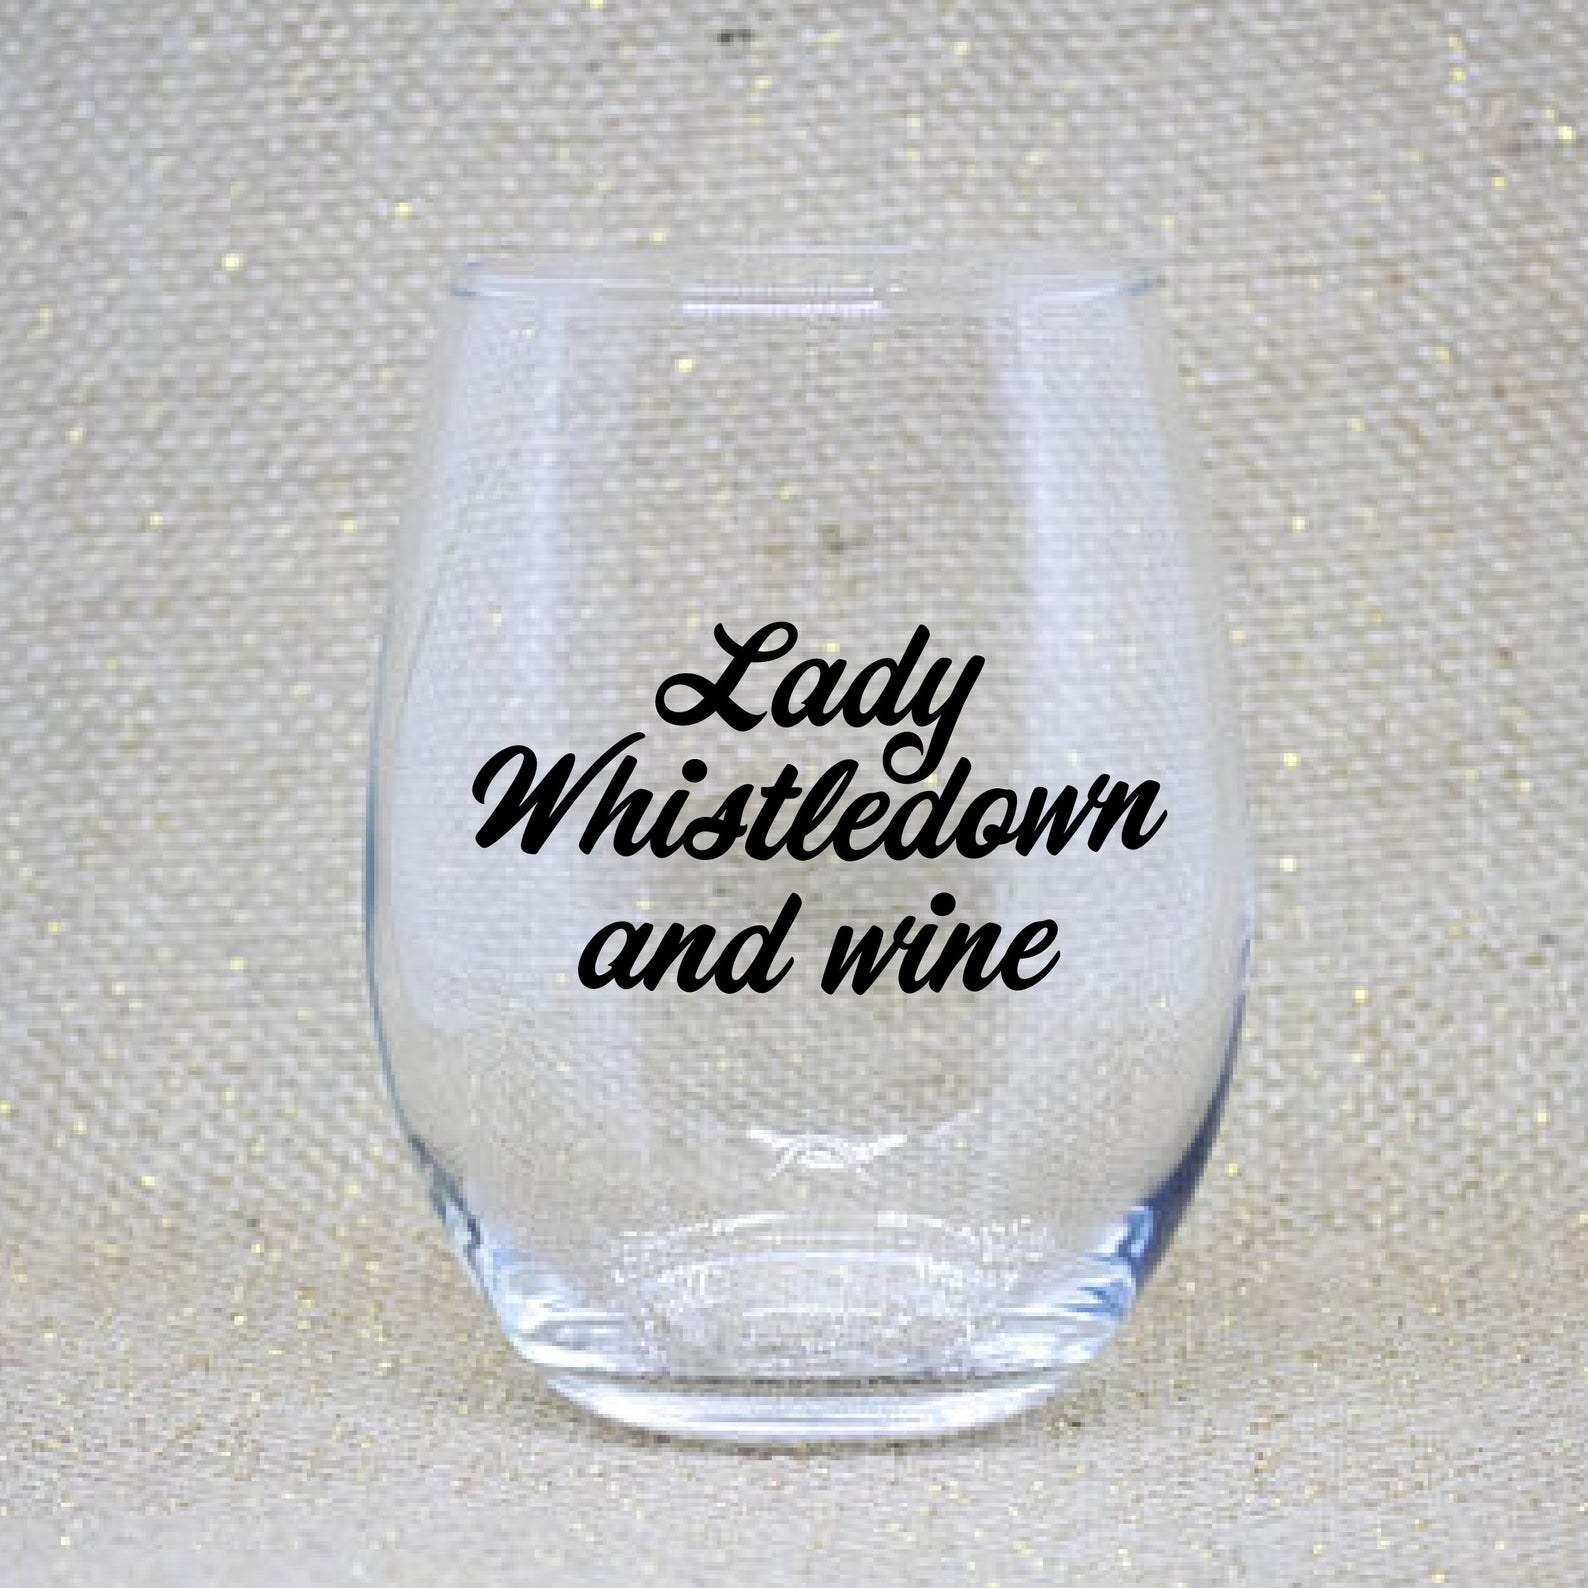 Lady Whistledown and Wine glass